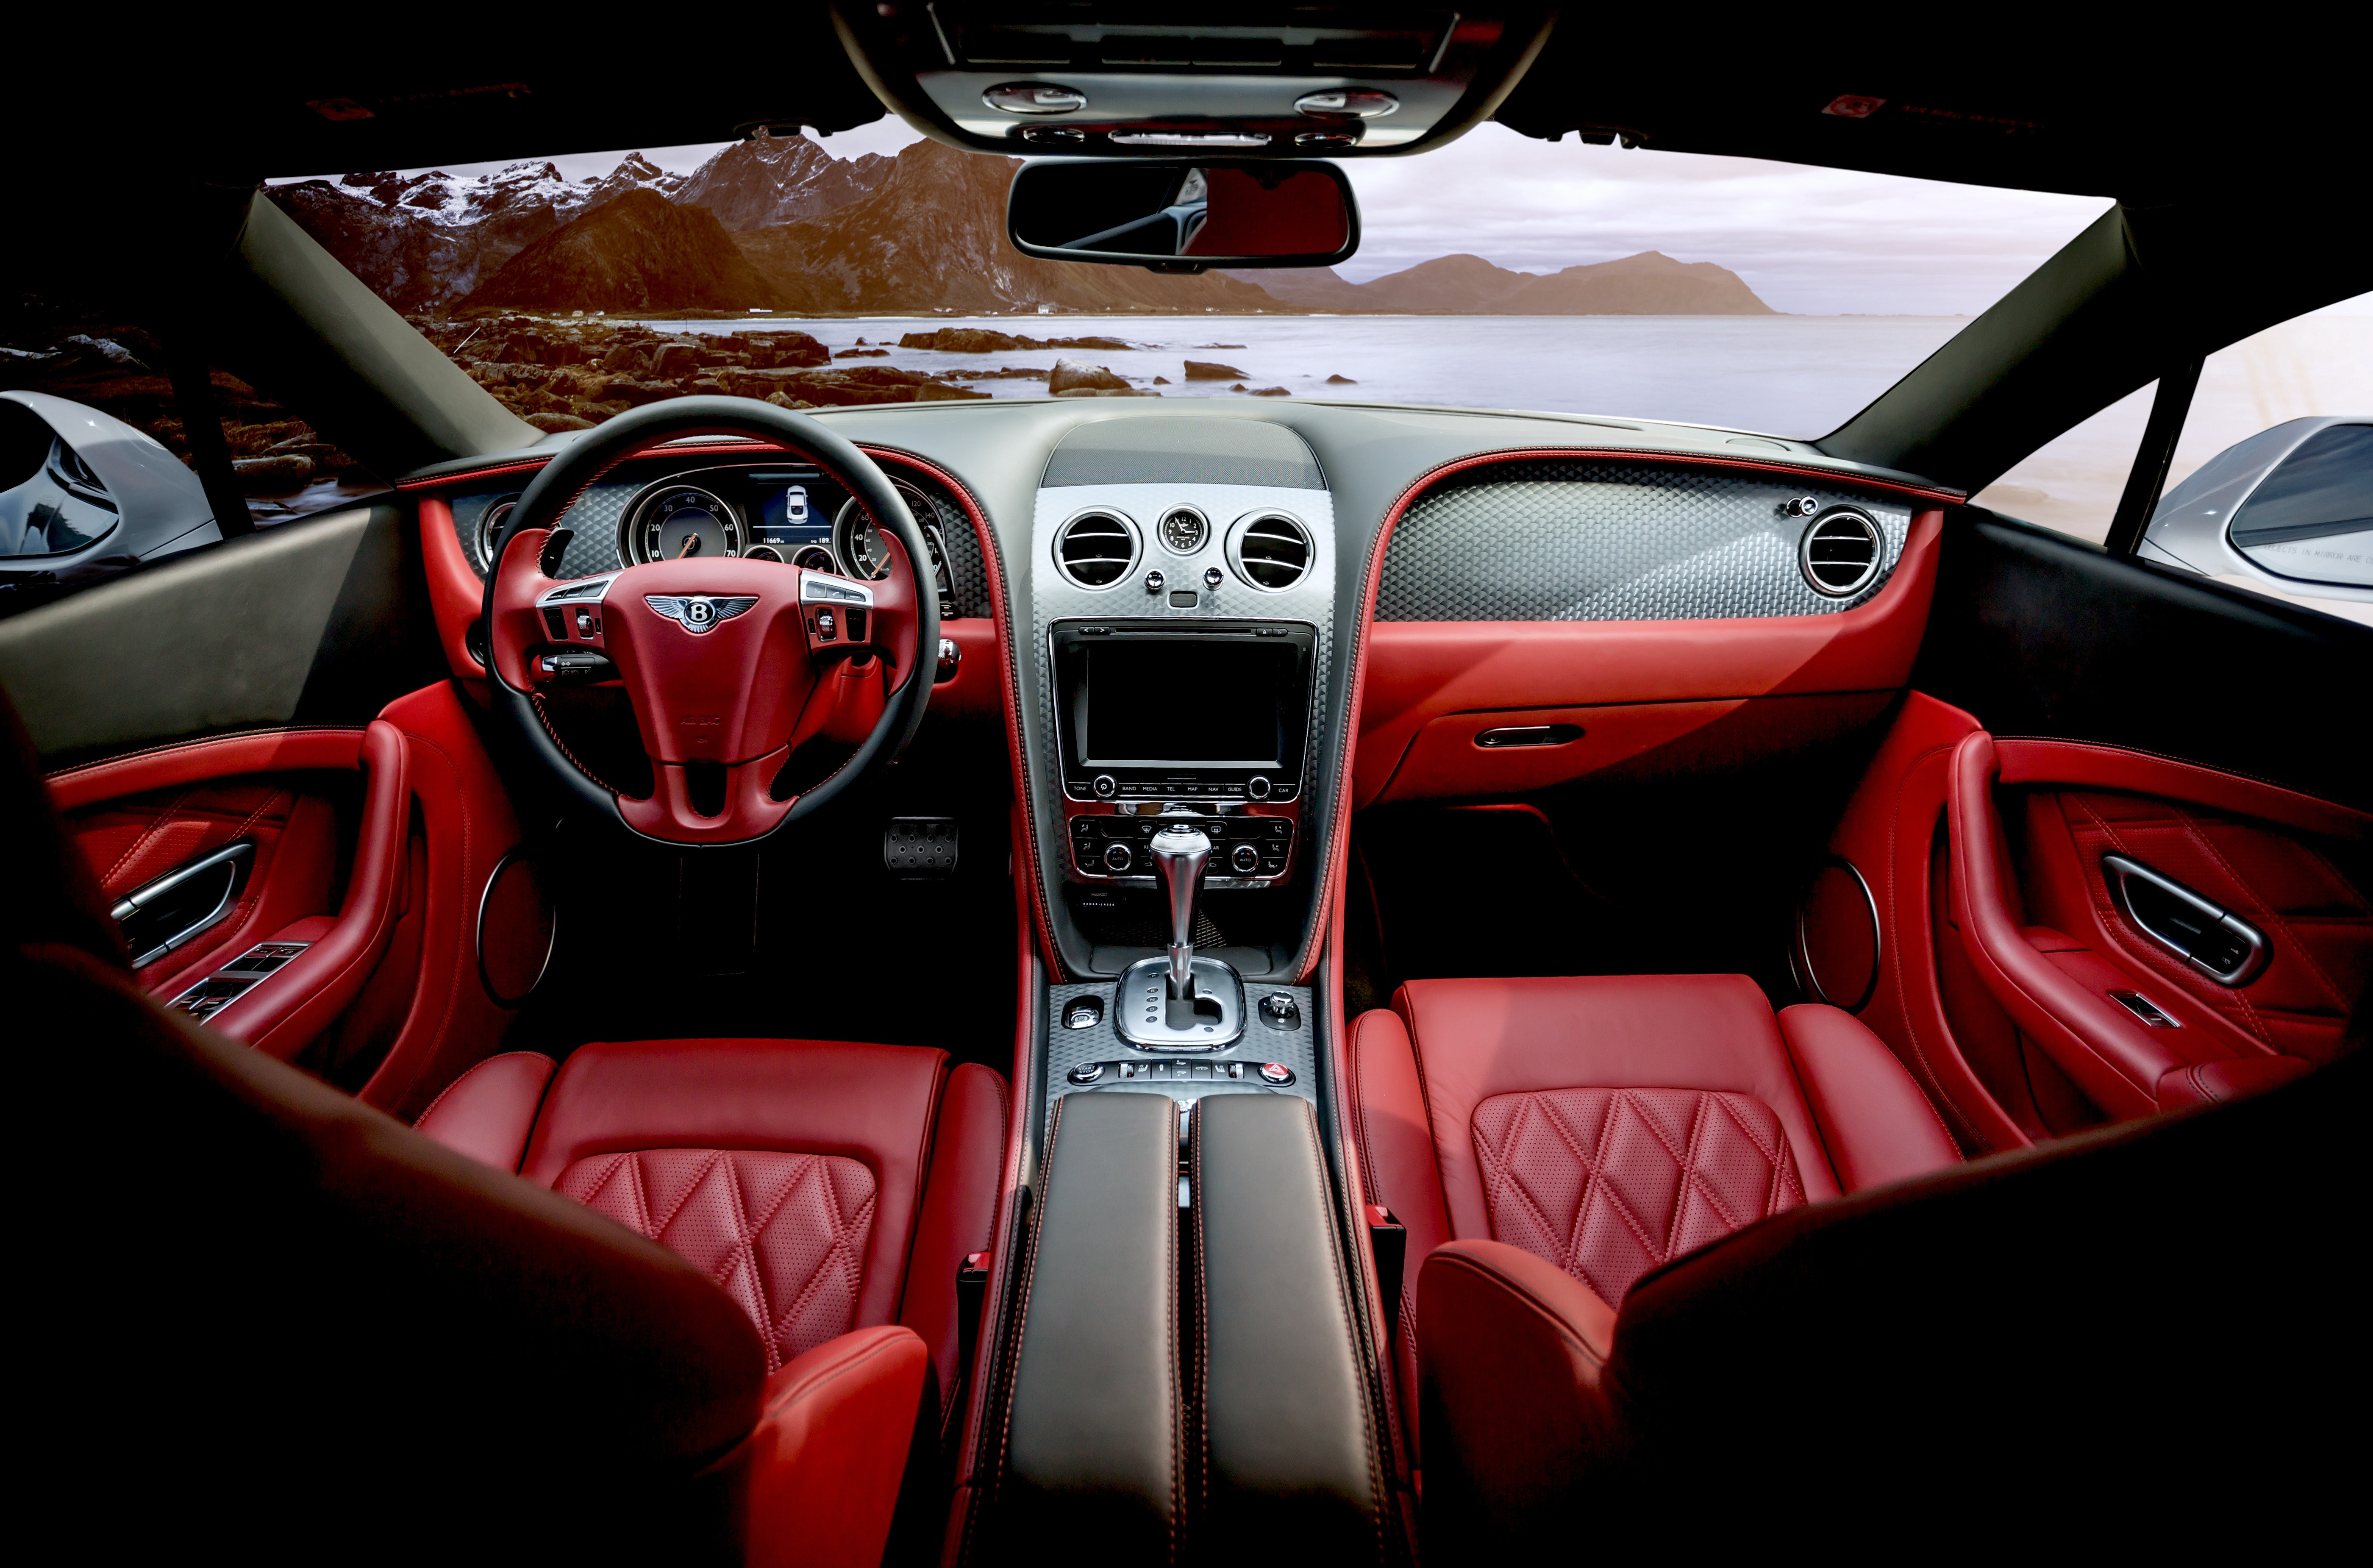 Interior of luxury car